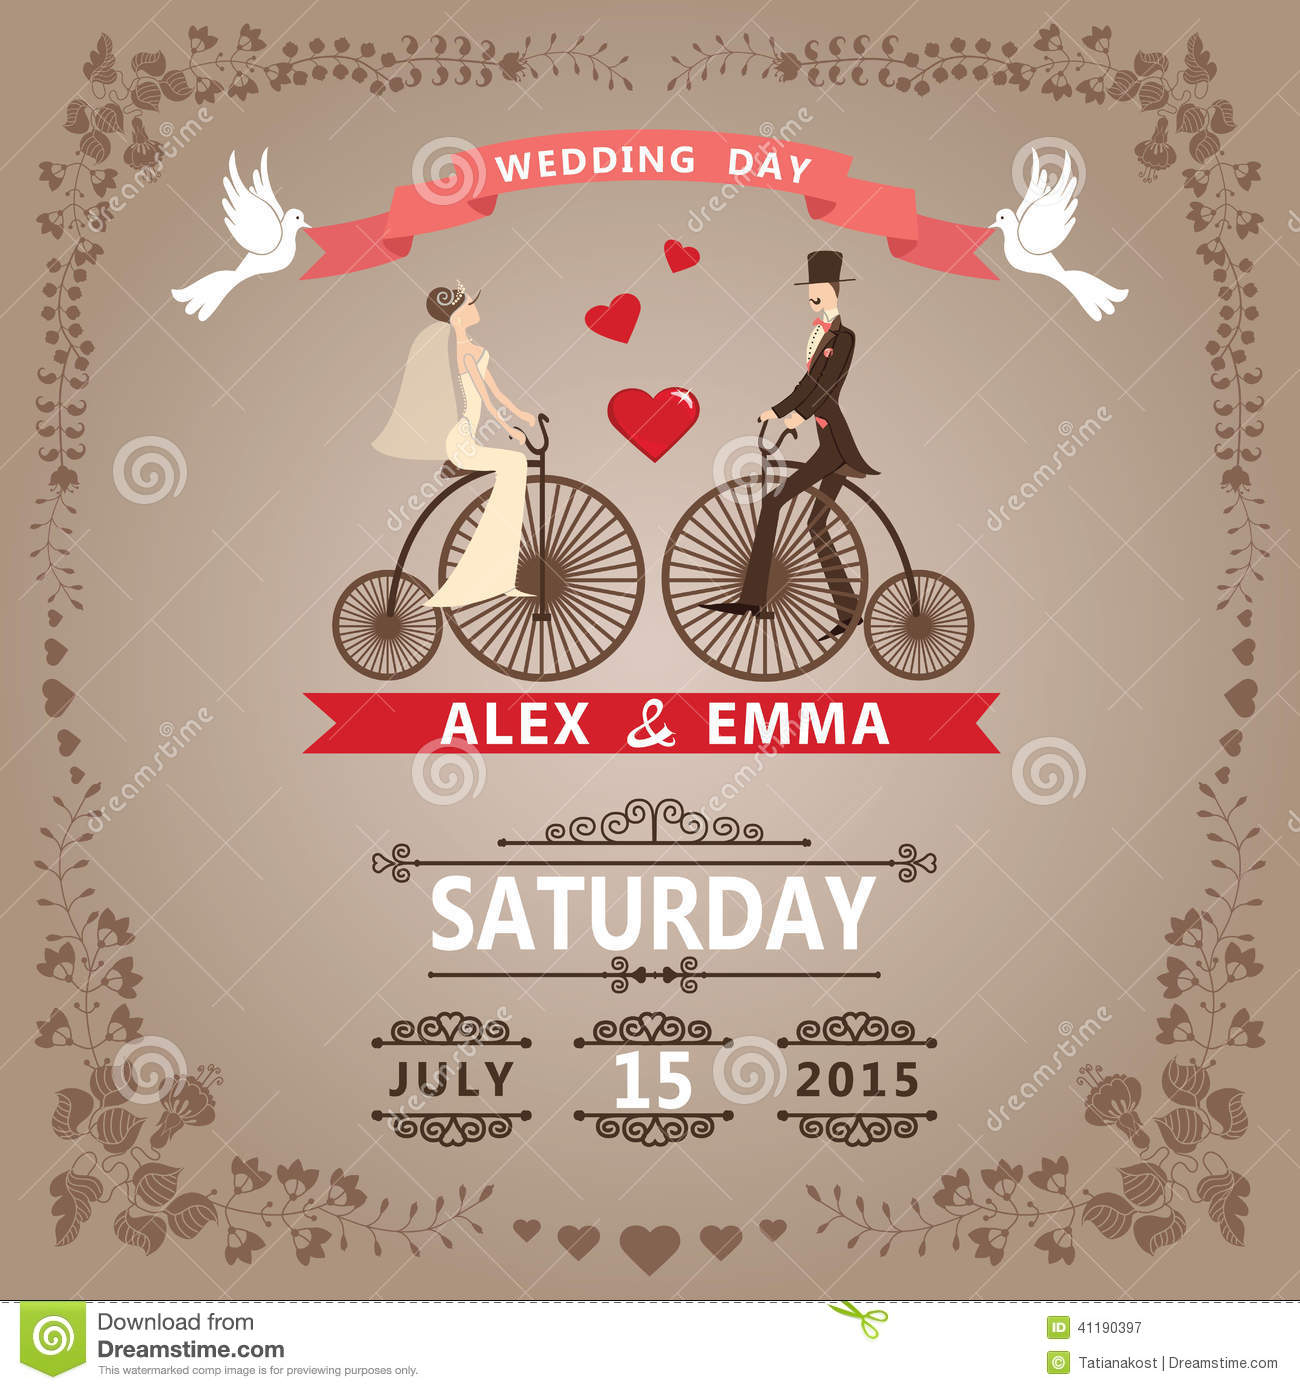 Wedding Invitation Wording From Bride And Groom for awesome invitation example